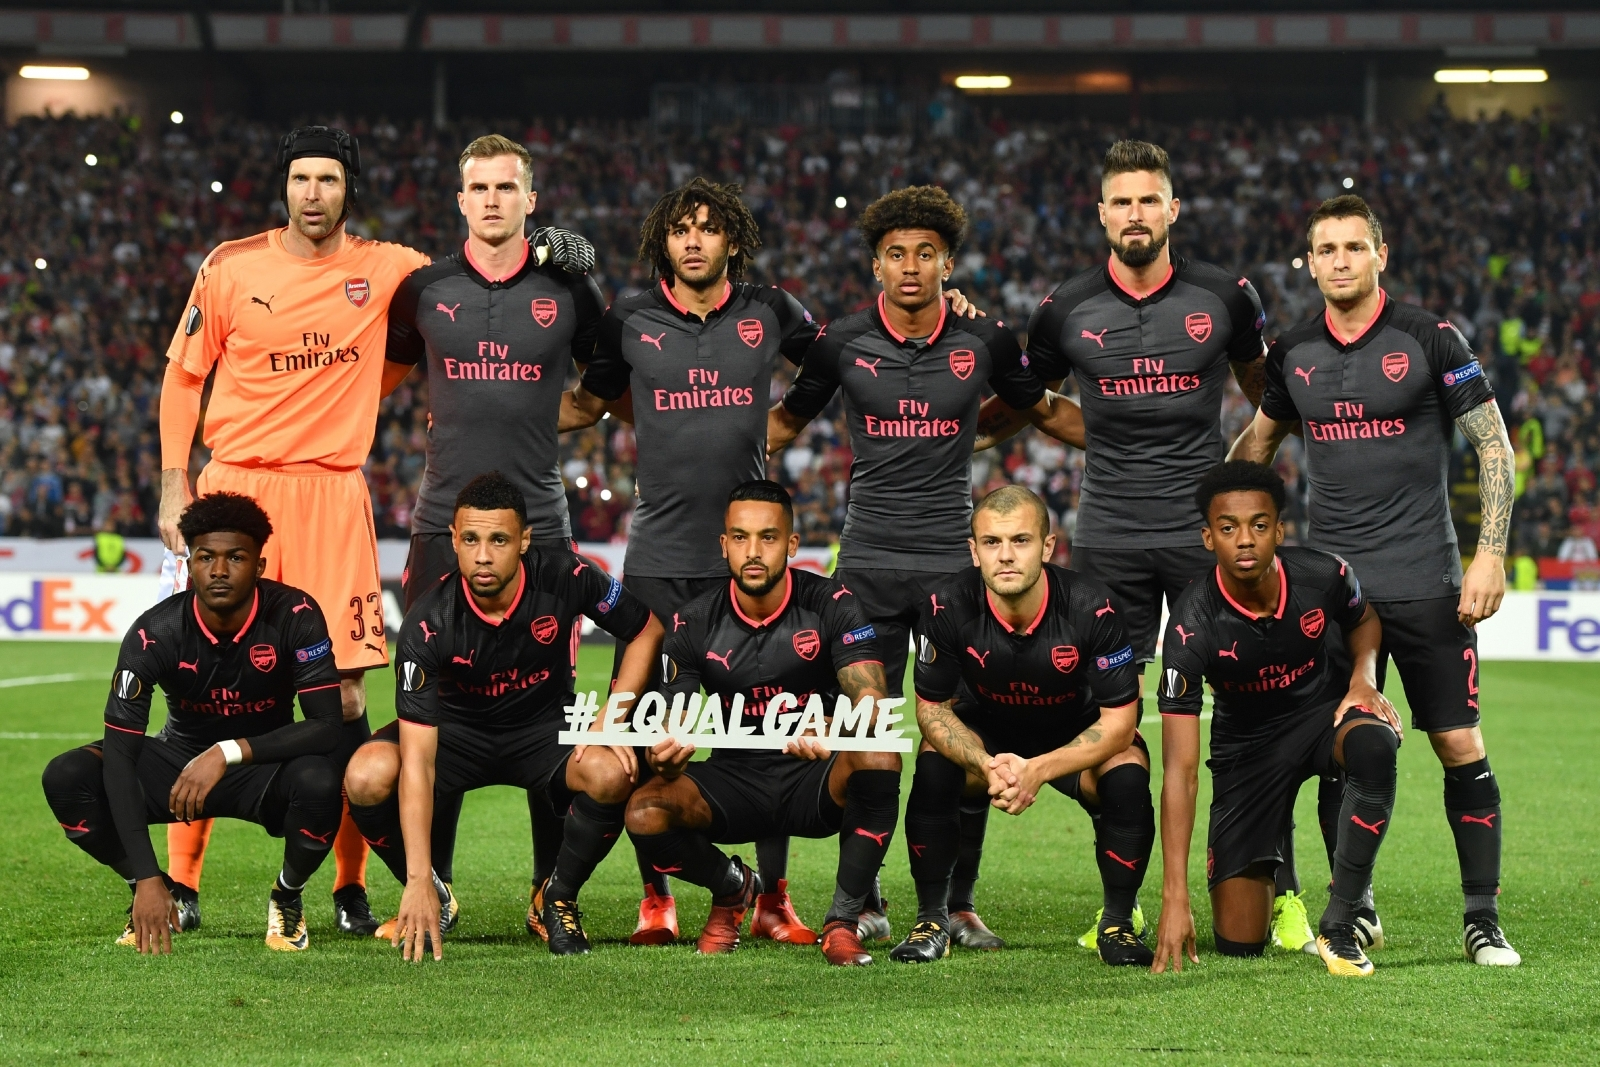 Europa League draw: Arsenal draw Ostersunds, Celtic face Zenit St Petersburg